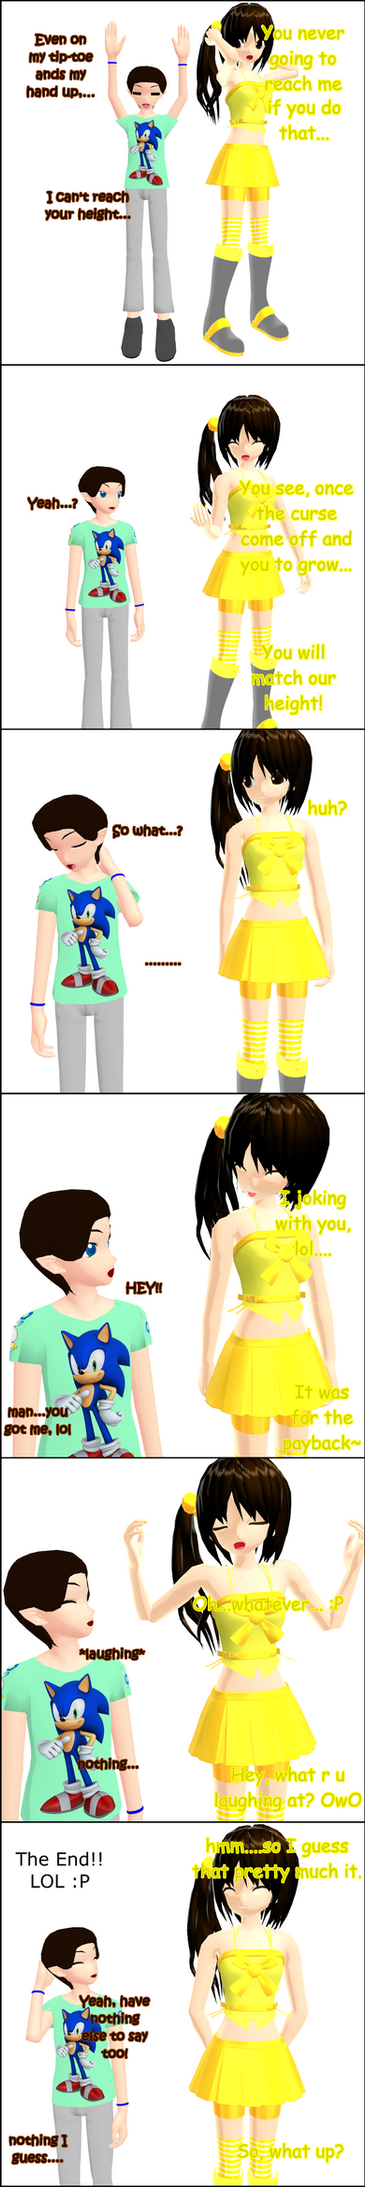 MMD-All a Joke by ACT2KagamineRin